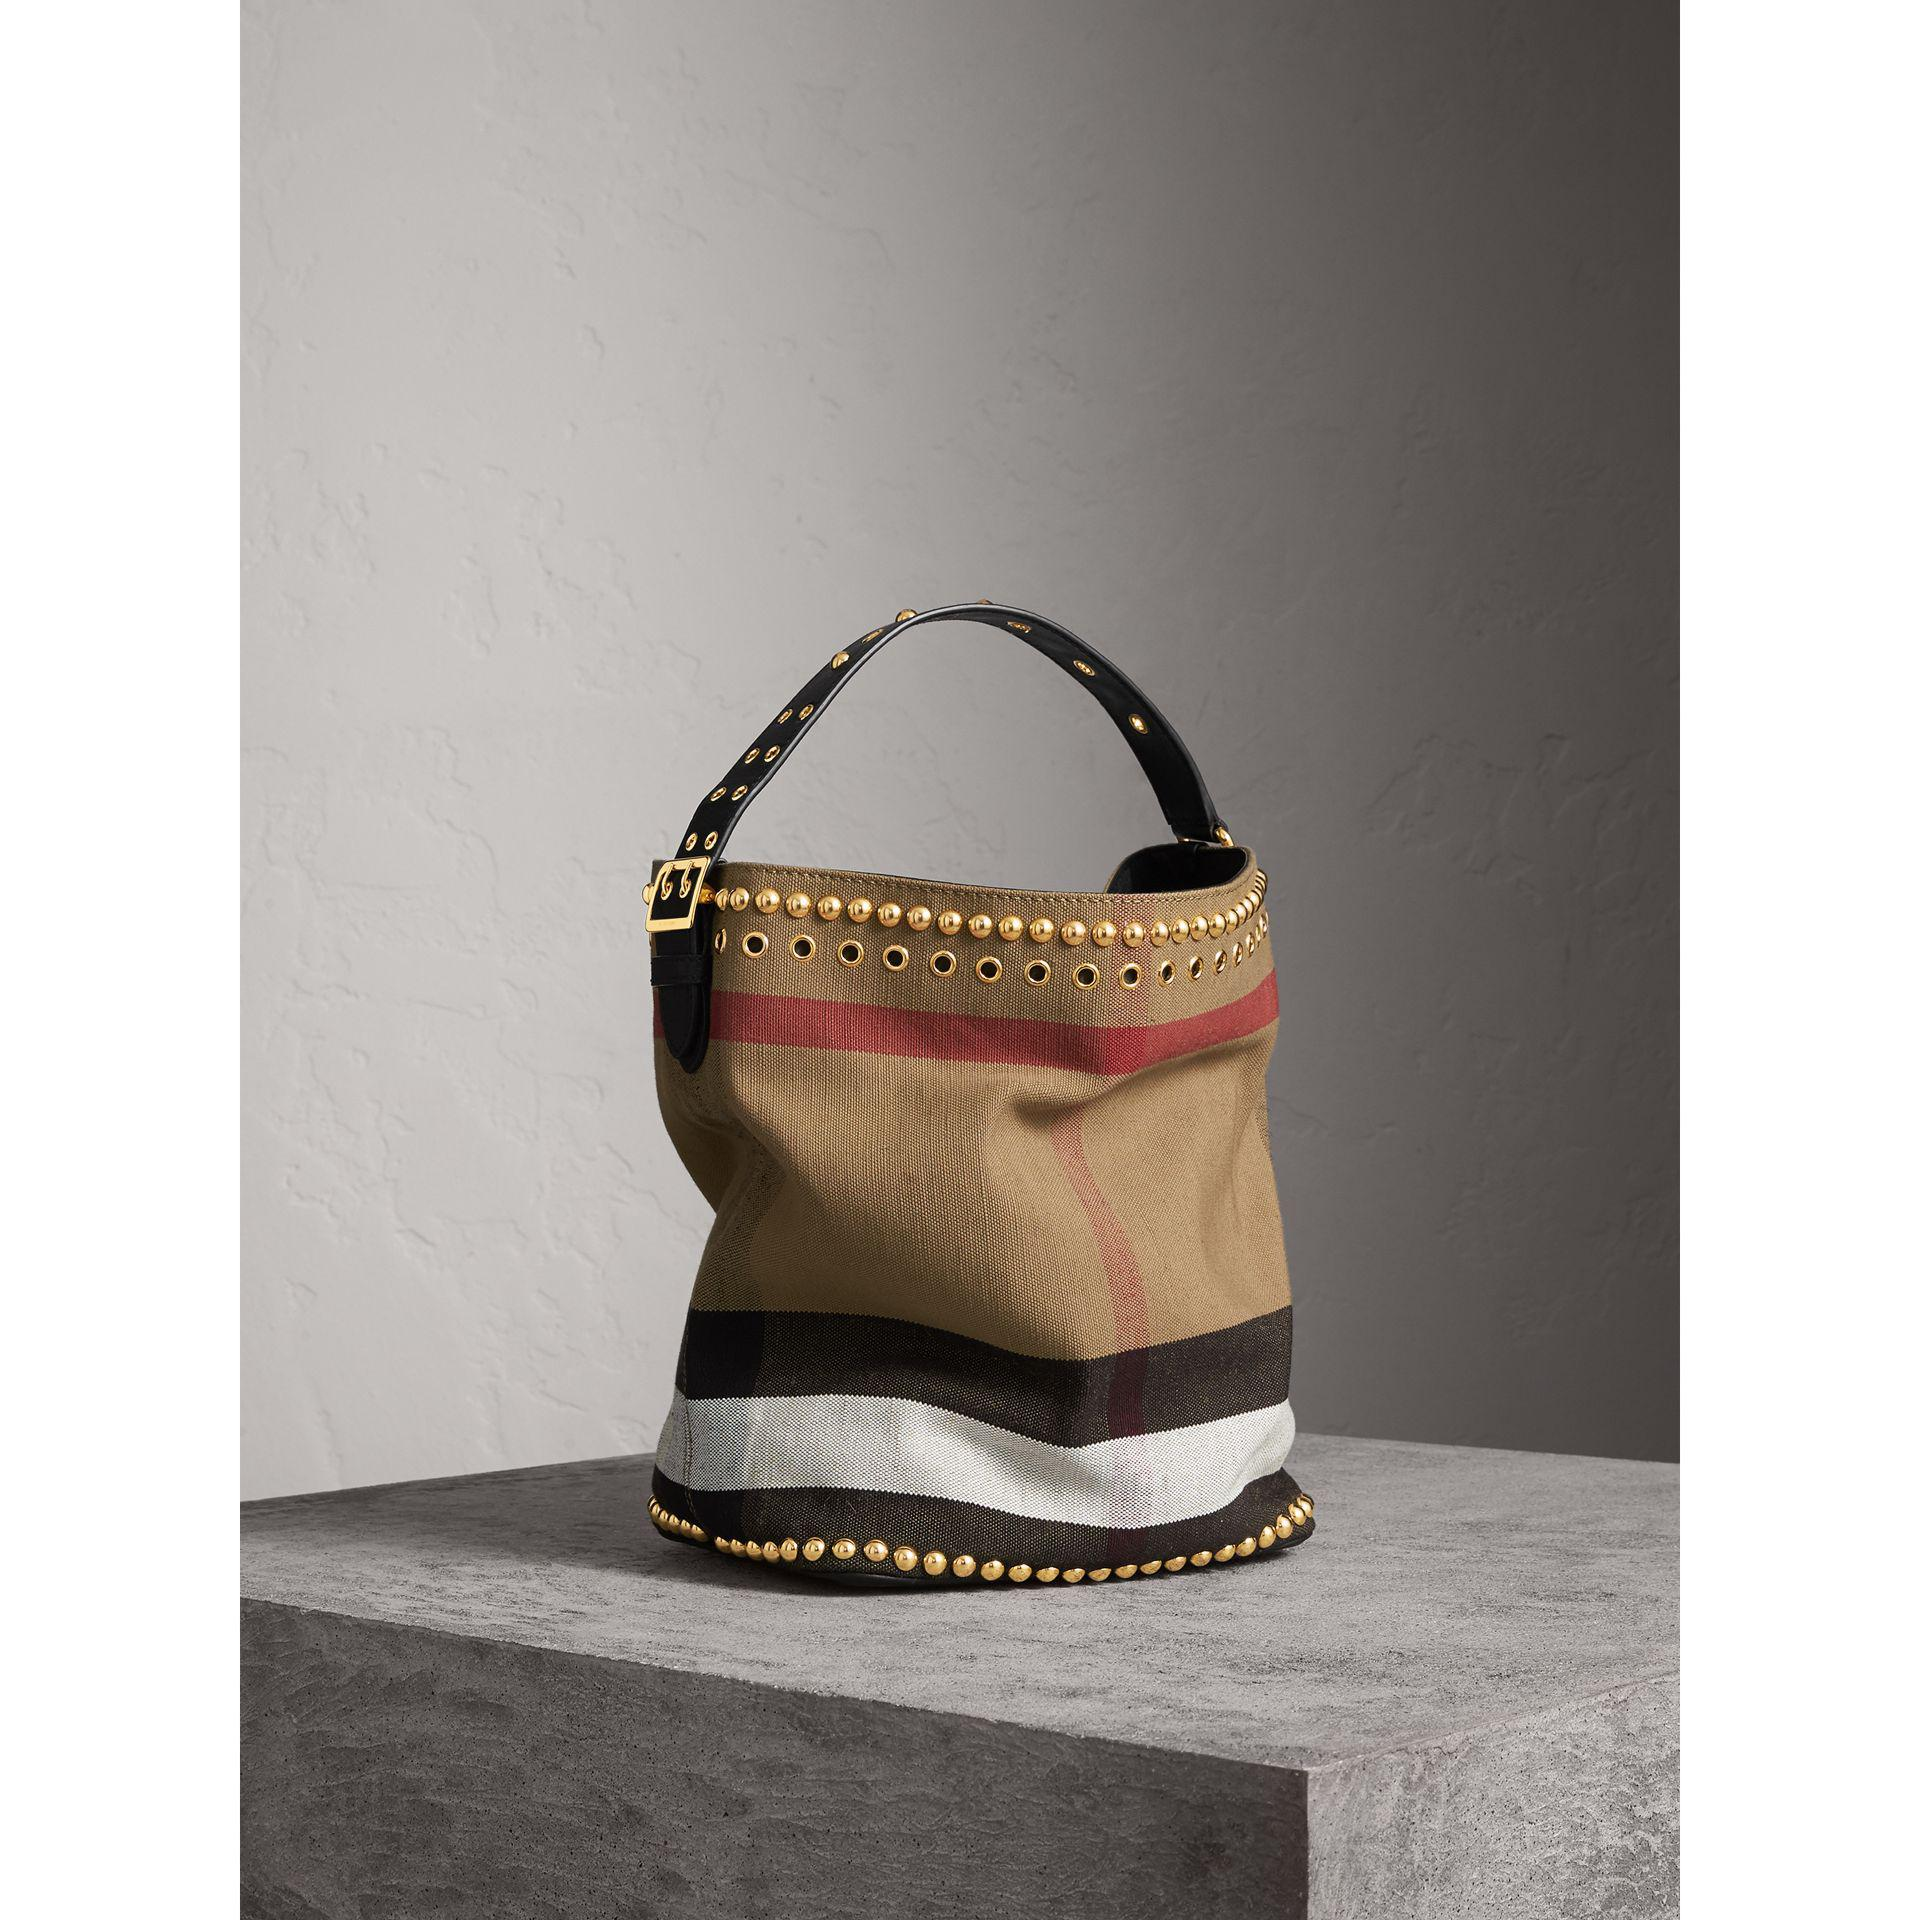 5370bdd2b820 Burberry The Medium Ashby In Riveted Canvas Check And Leather in ...